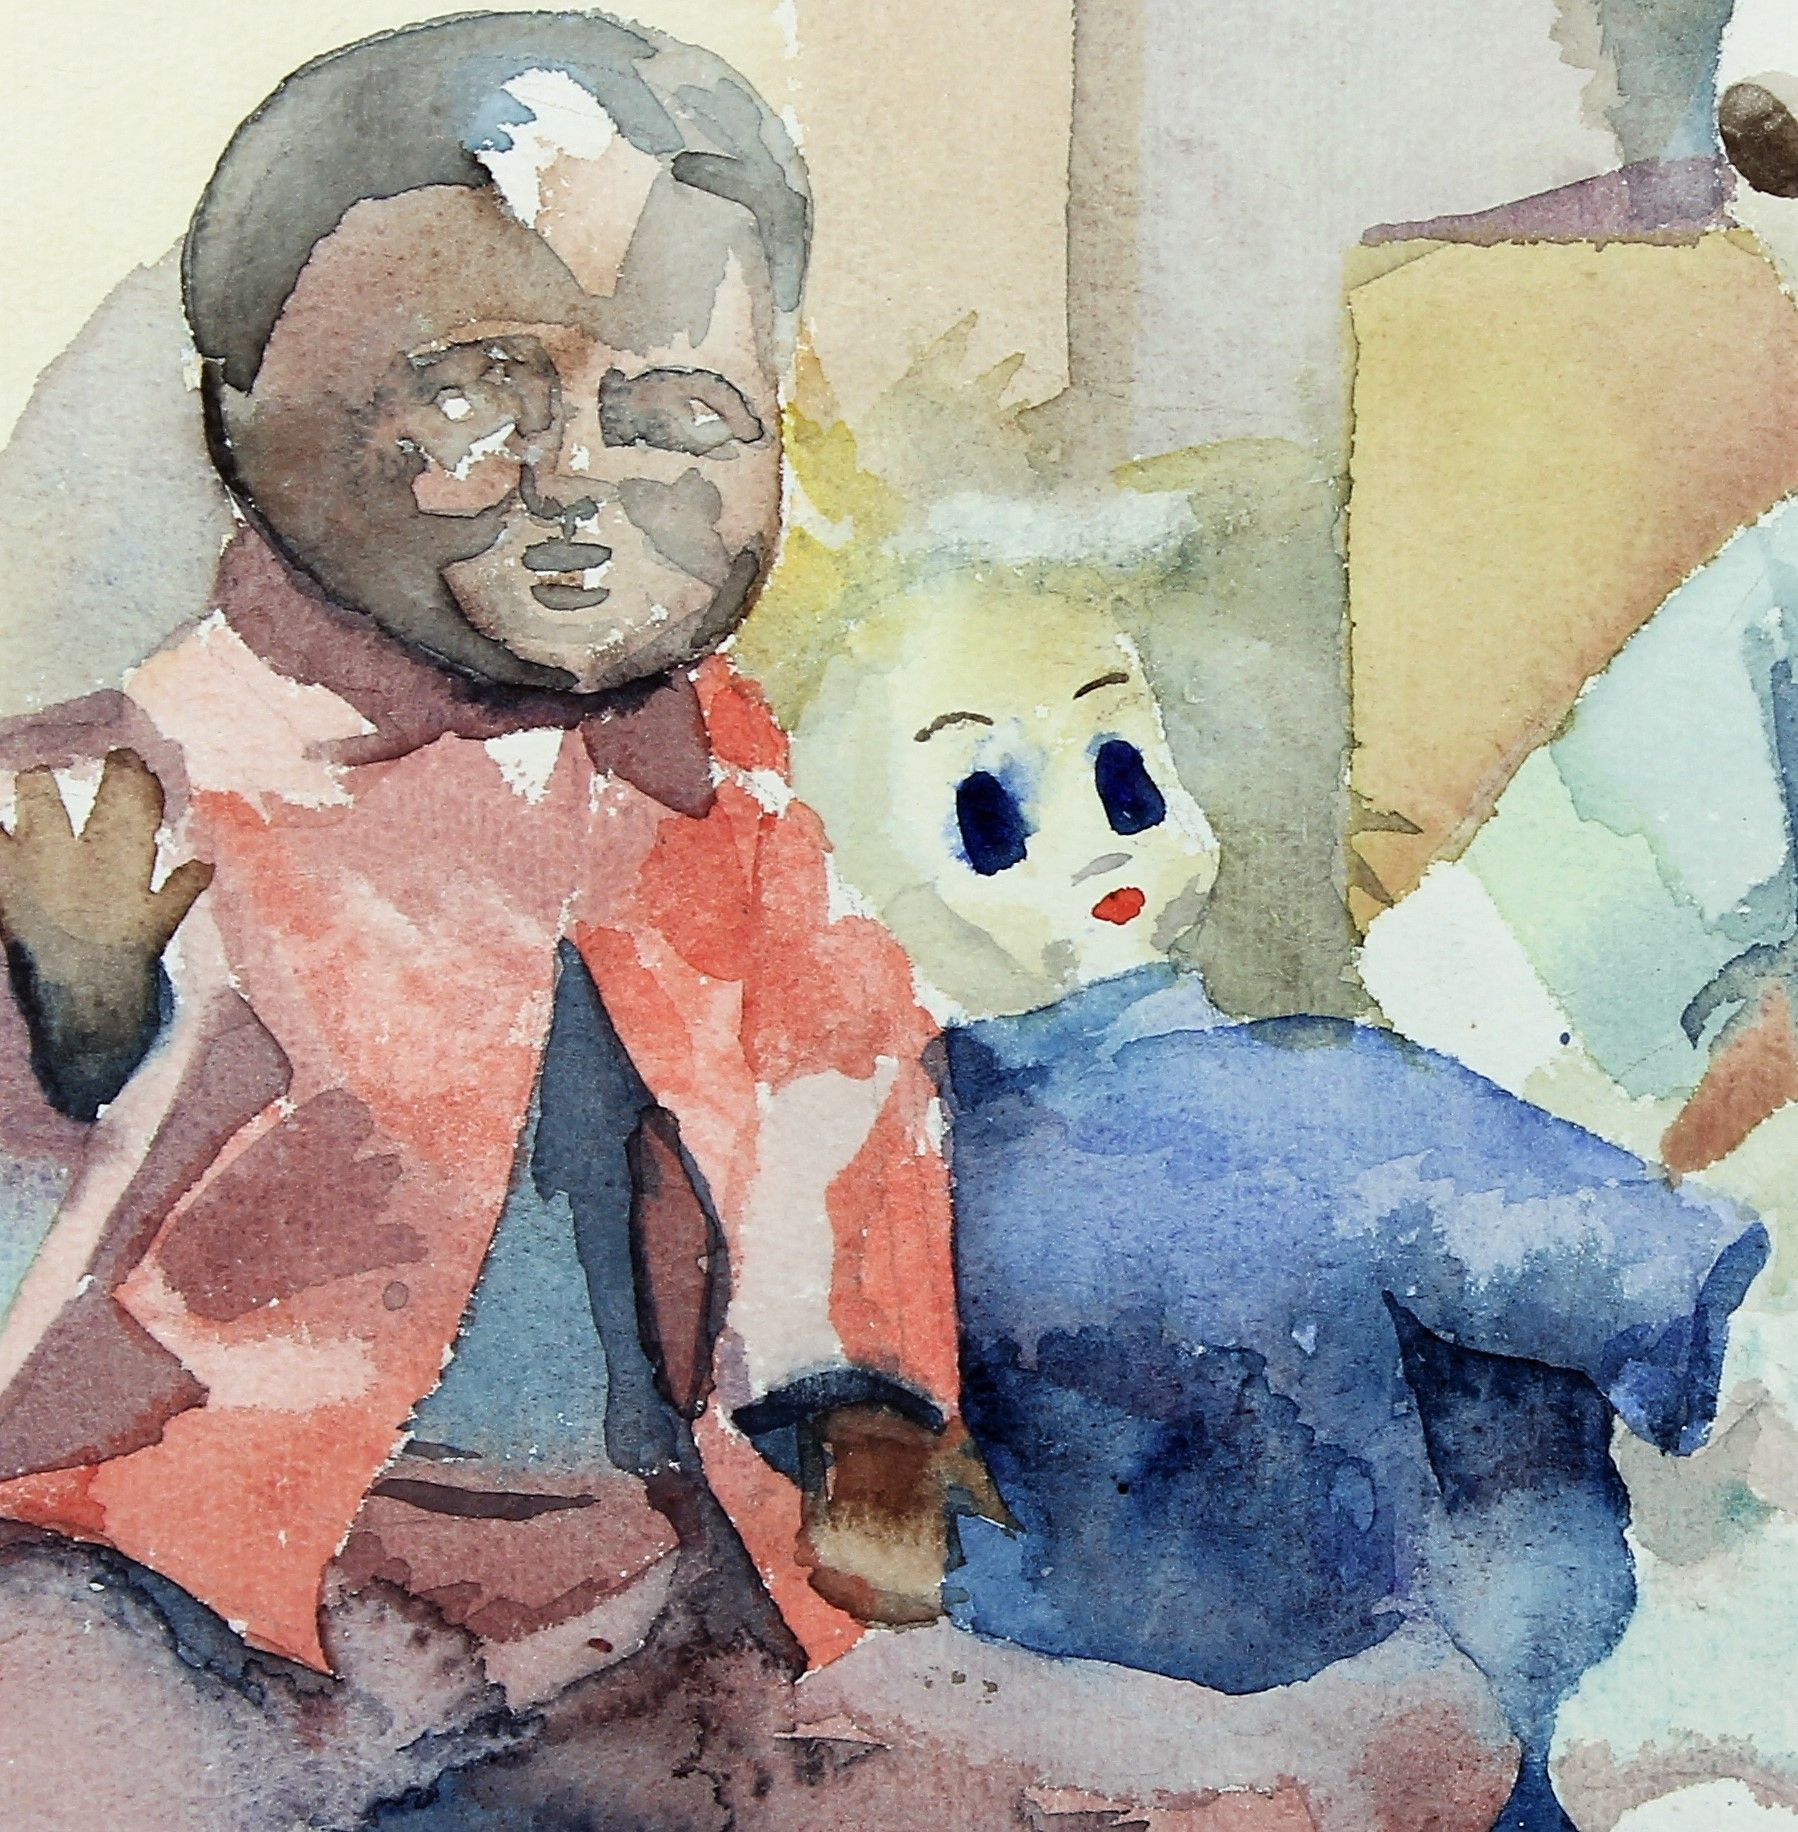 detail of Heili's dolls, watercolour